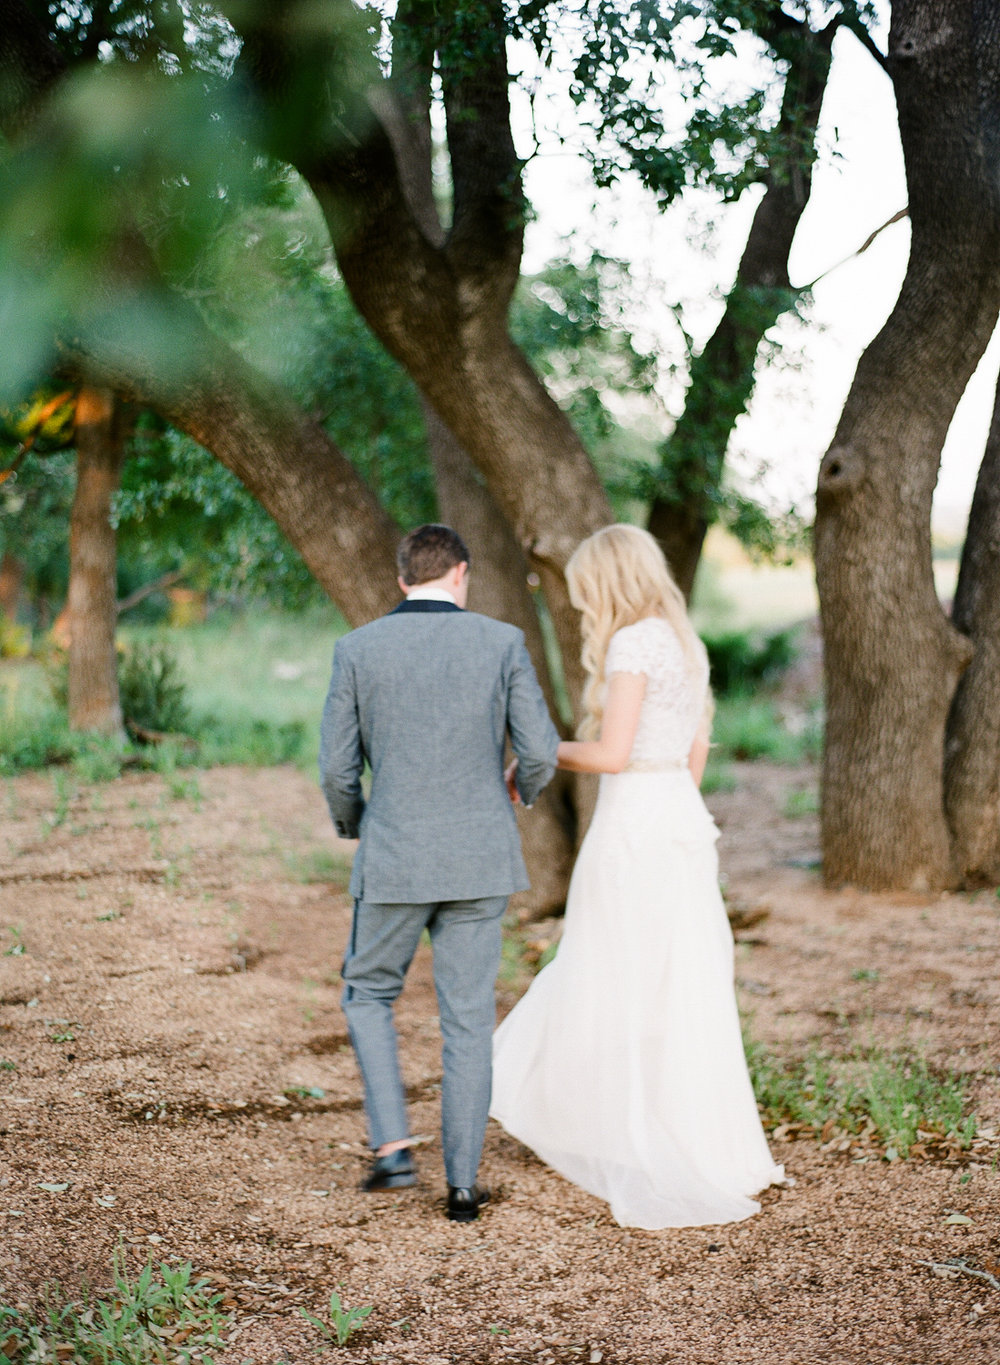 PROSPECT_HOUSE_WEDDING_AUSTIN_TX_BY_MATTHEW_MOORE_PHOTOGRAPHY_00587.jpg